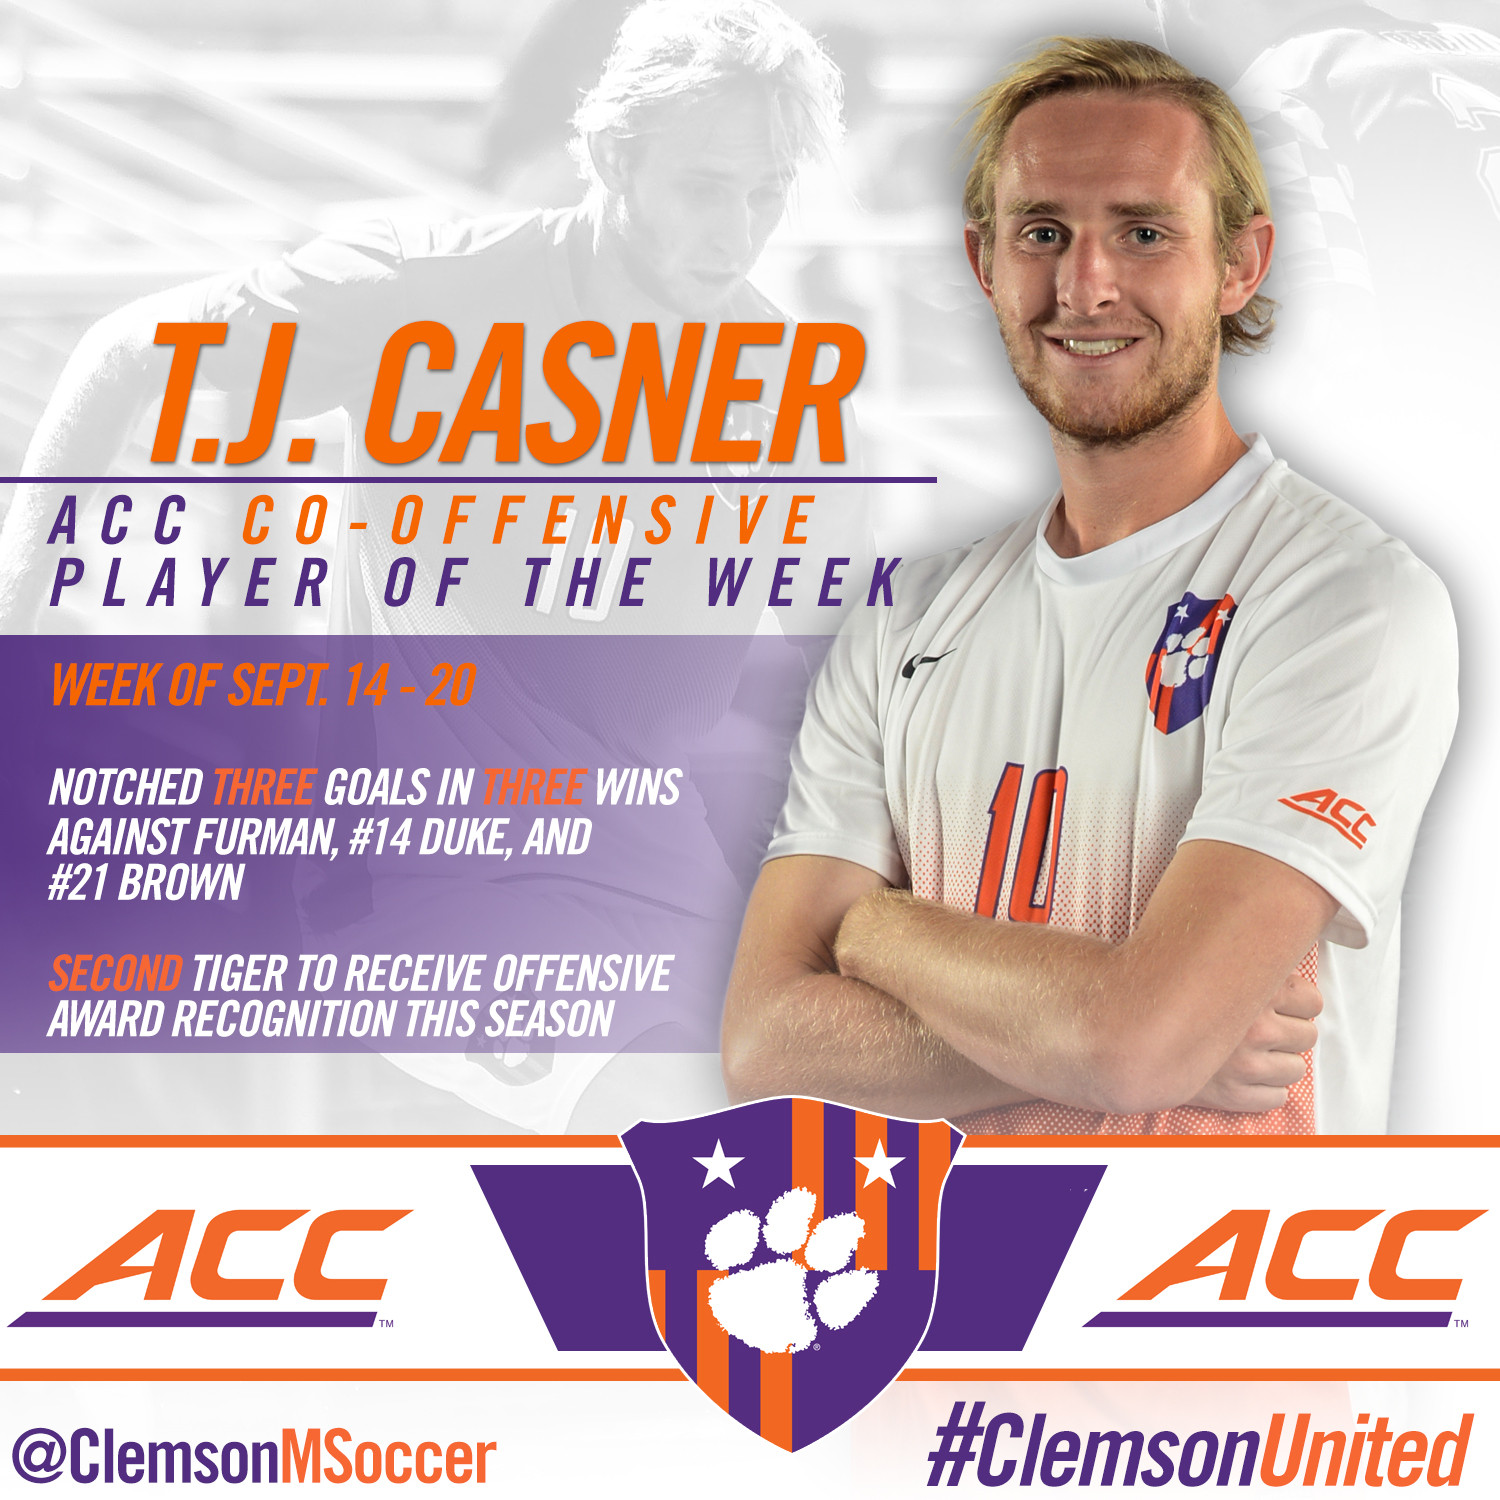 Casner Named ACC Co-Offensive Player of the Week